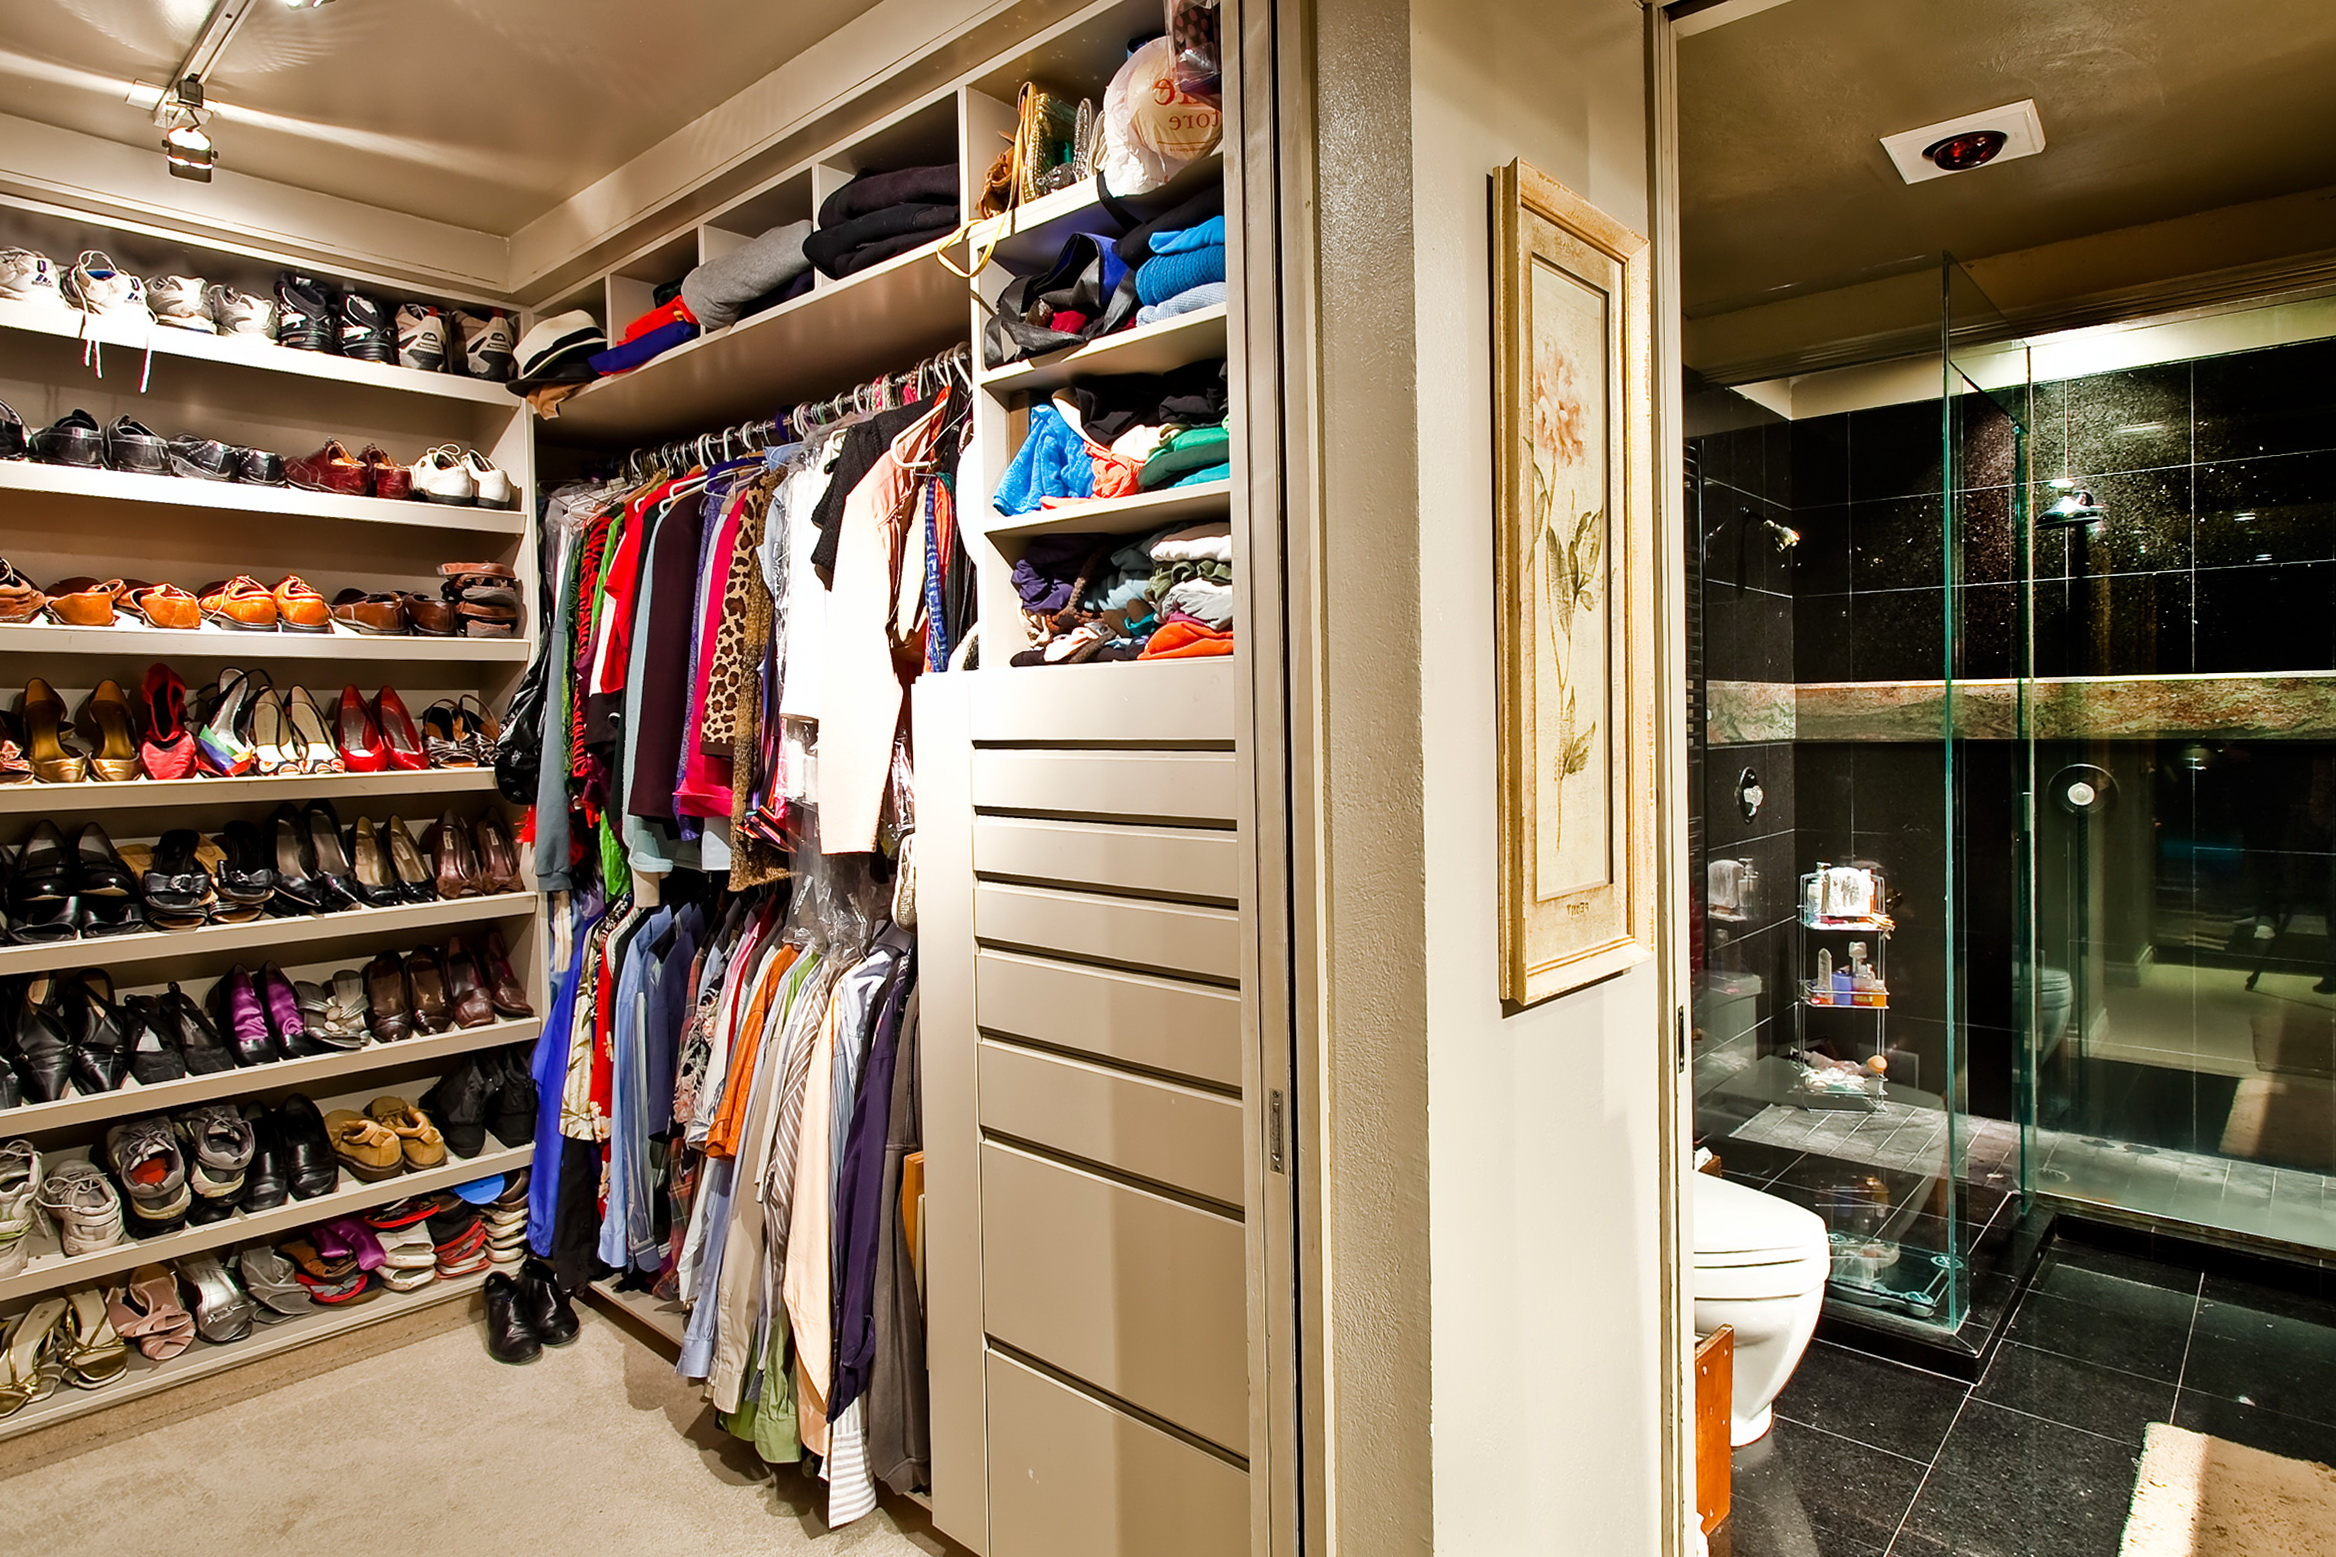 Space Saving Ideas For Small Closets Home Design Ideas